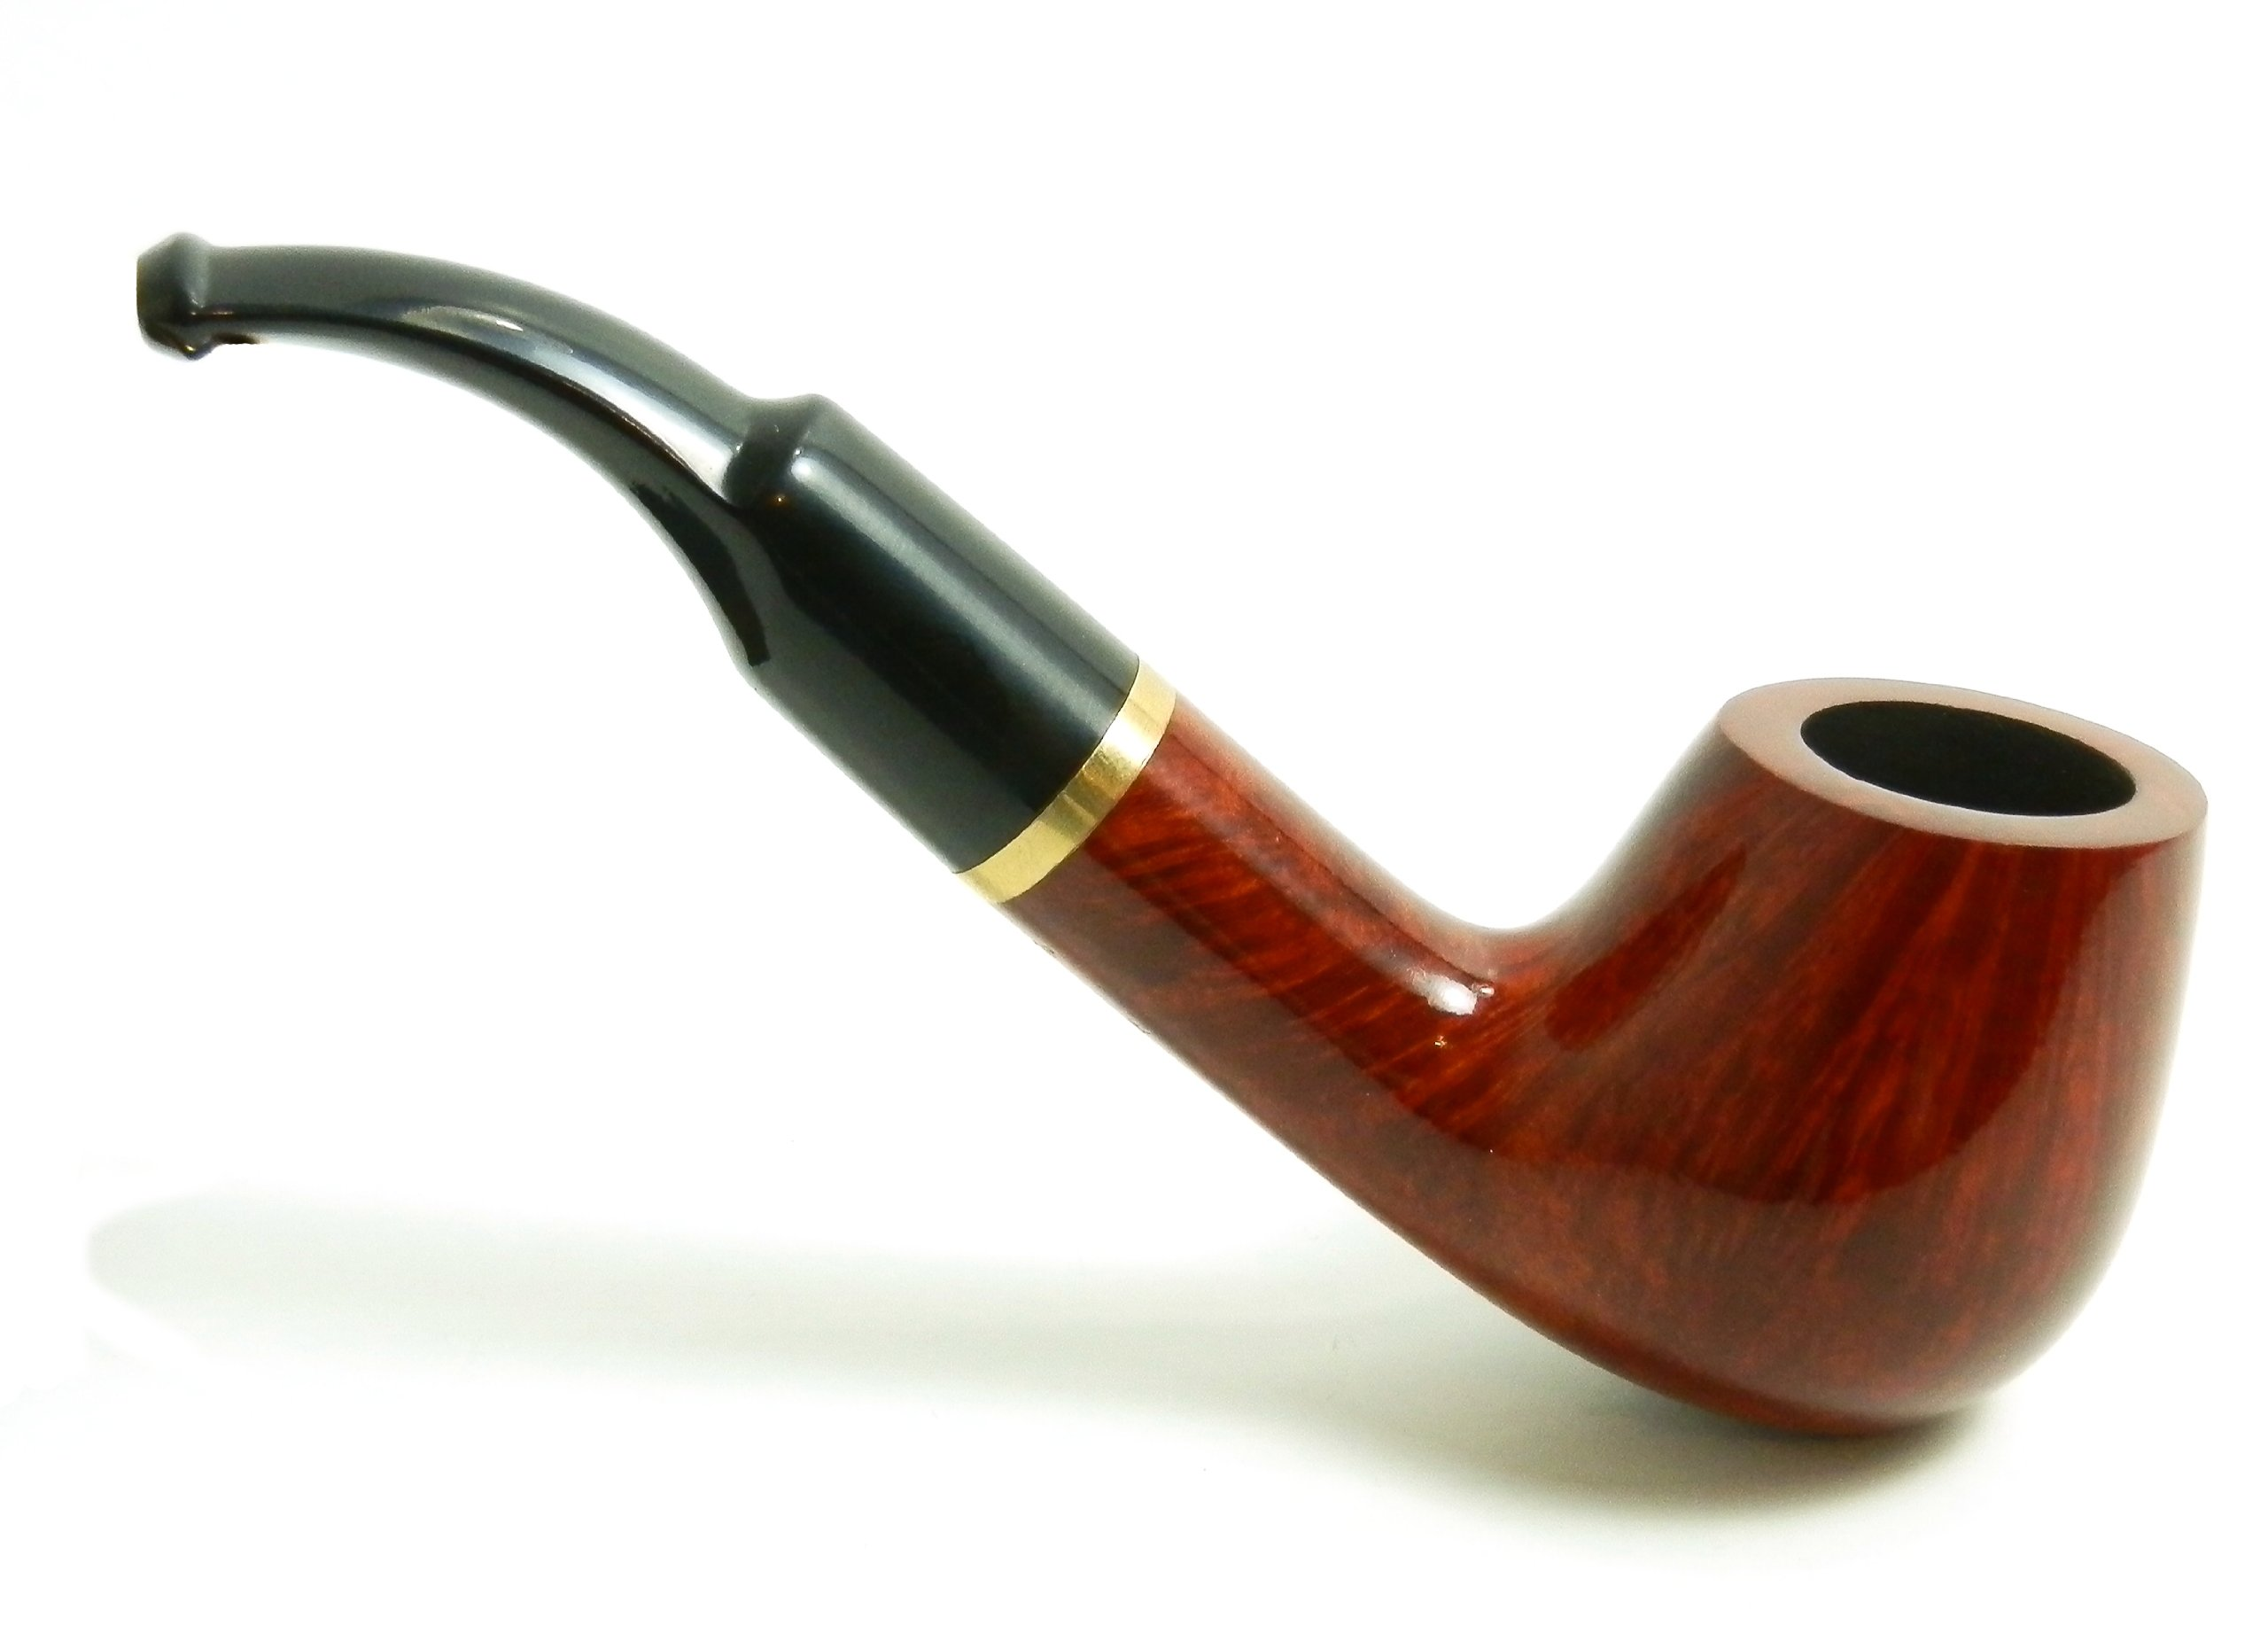 Mr. Brog Full Bent Tobacco Pipe - Model No: 67 Full Bent Pecan - Mediterranean Briar Wood - Hand Made